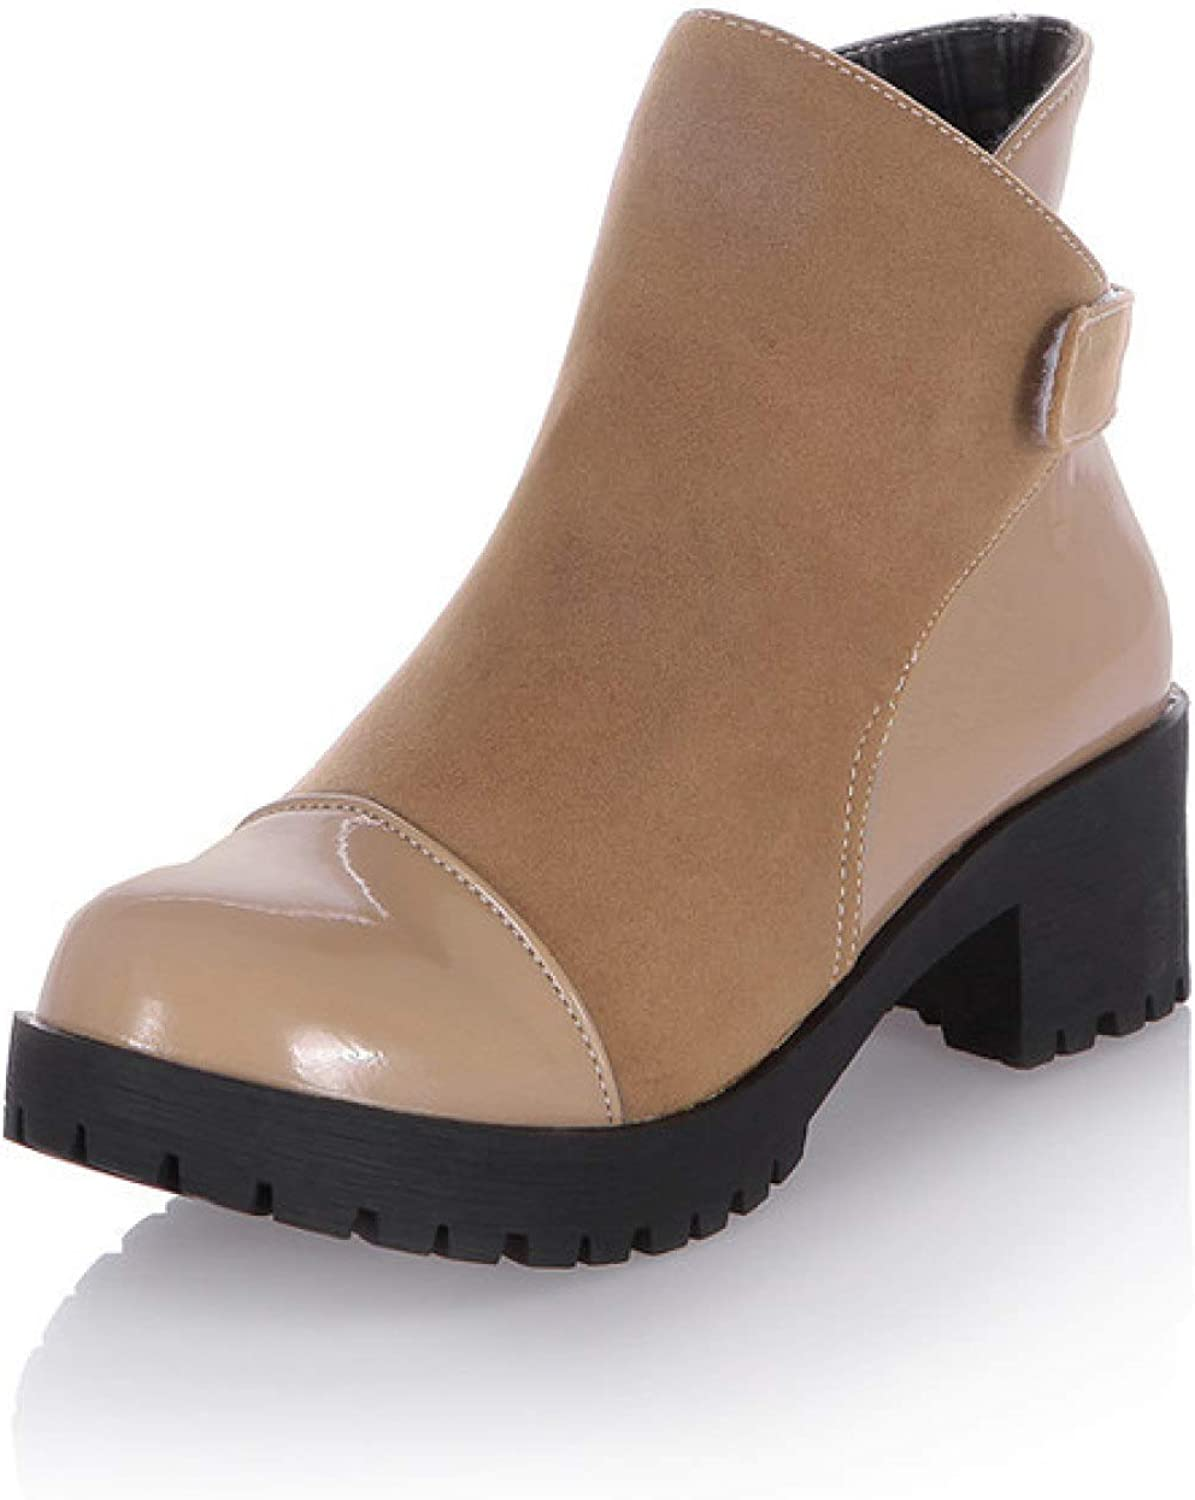 Women's Ankle Boots Slip on Chunky Stacked Heel Fash Seattle Mall Max 81% OFF Booties Mid